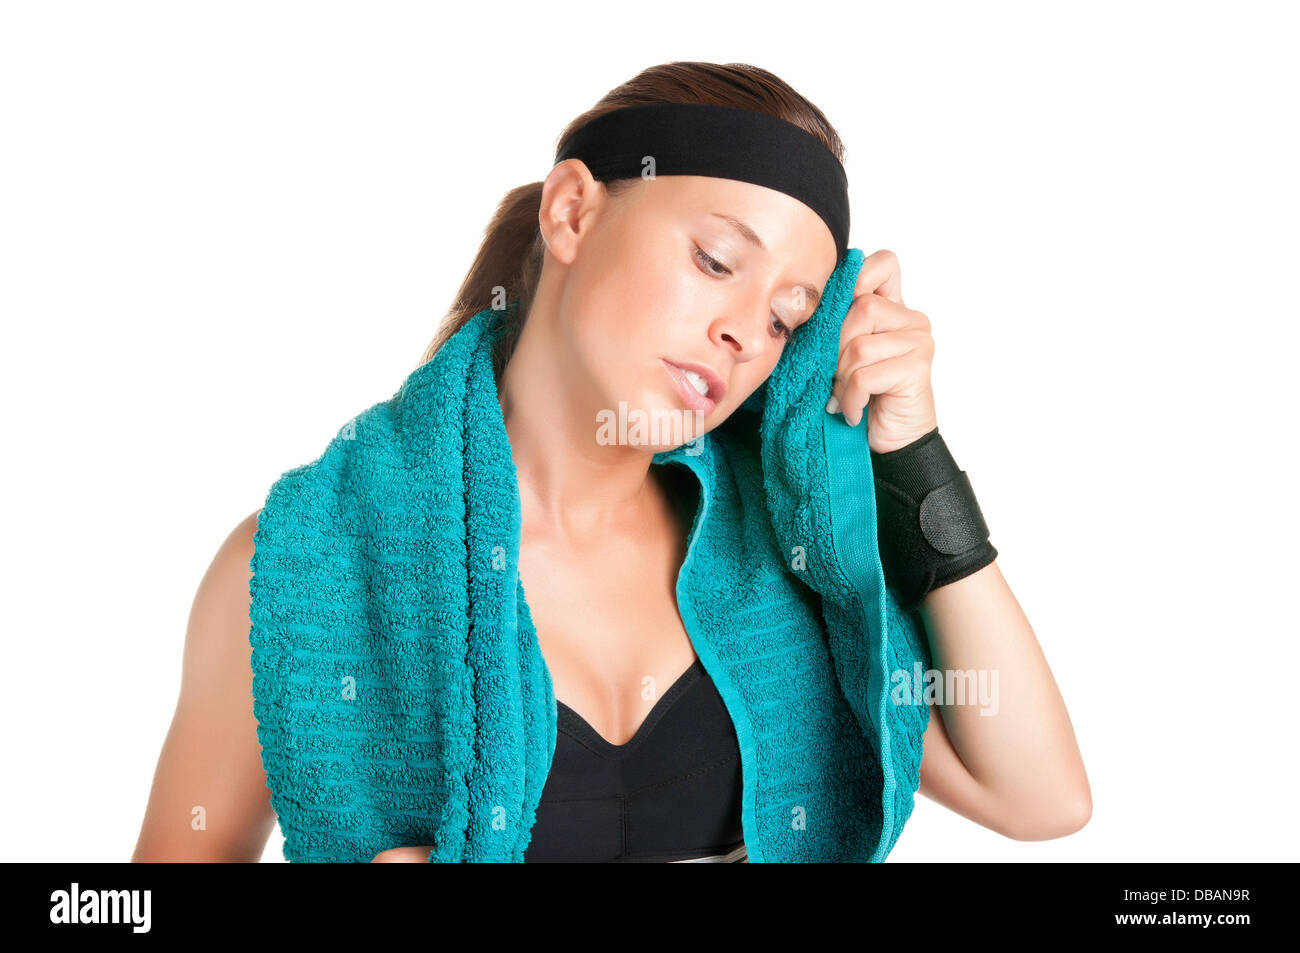 Woman Resting After Workout - Stock Image